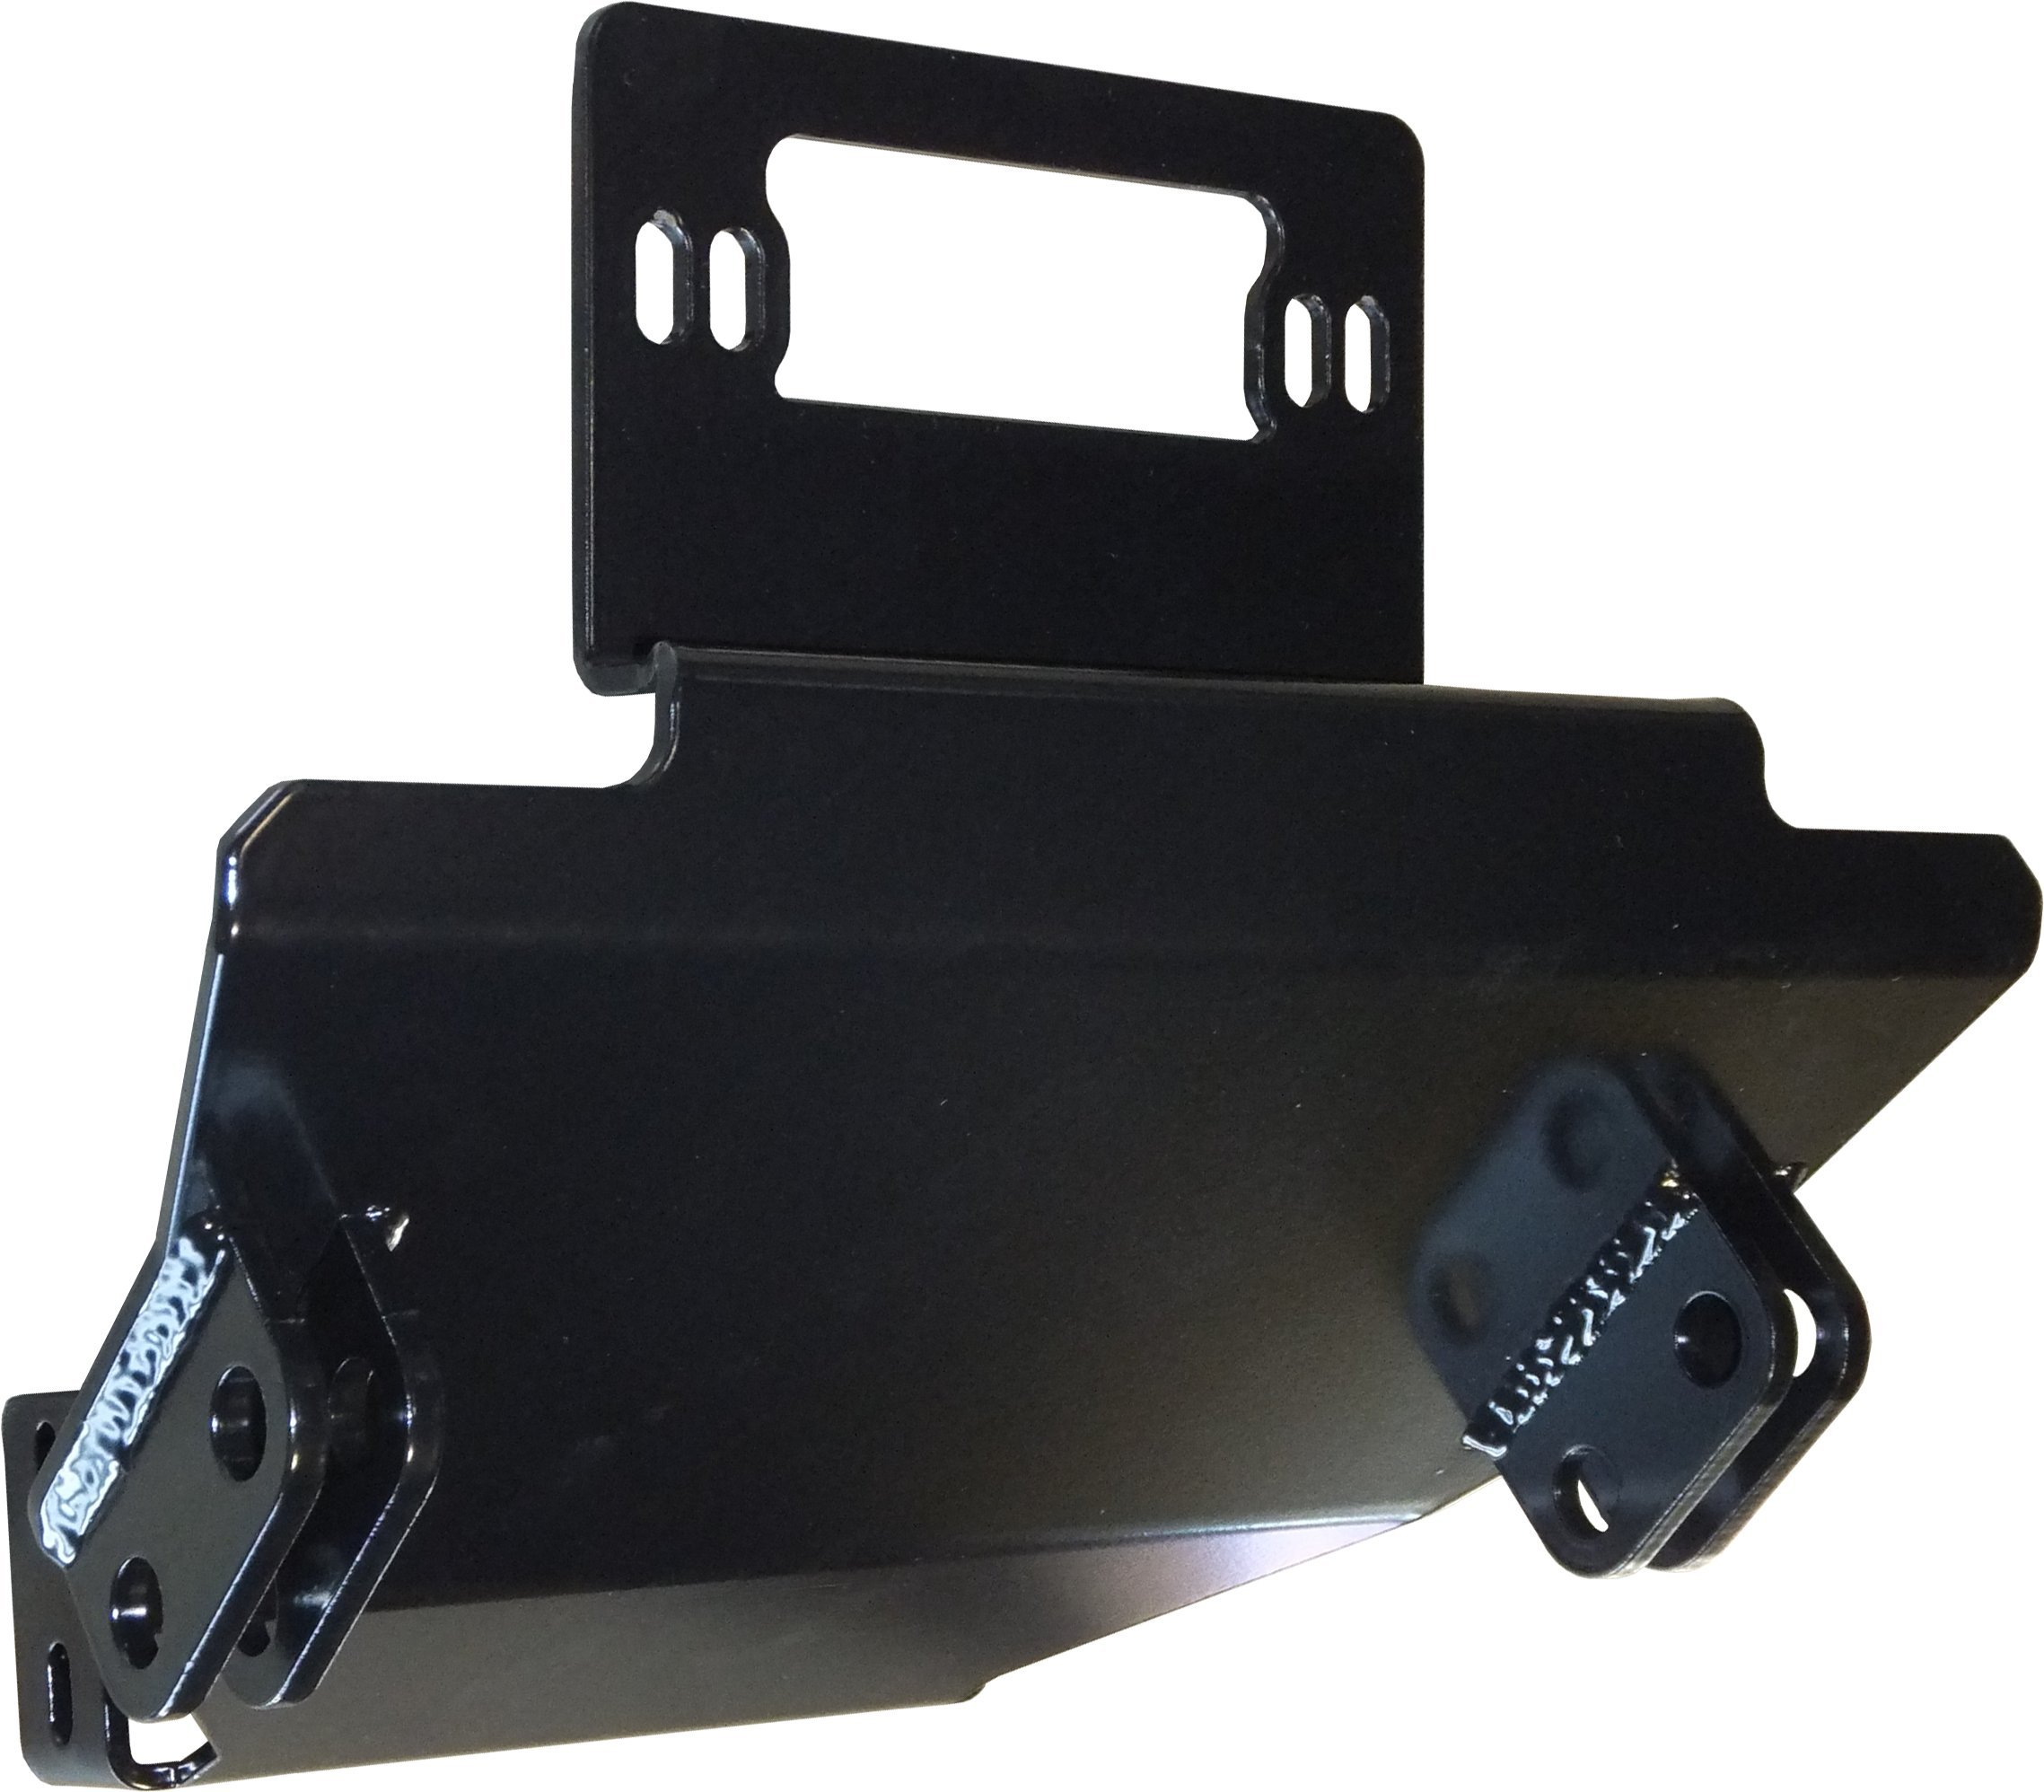 KFI Products 105470 Multi Utv Plow Mount Kit